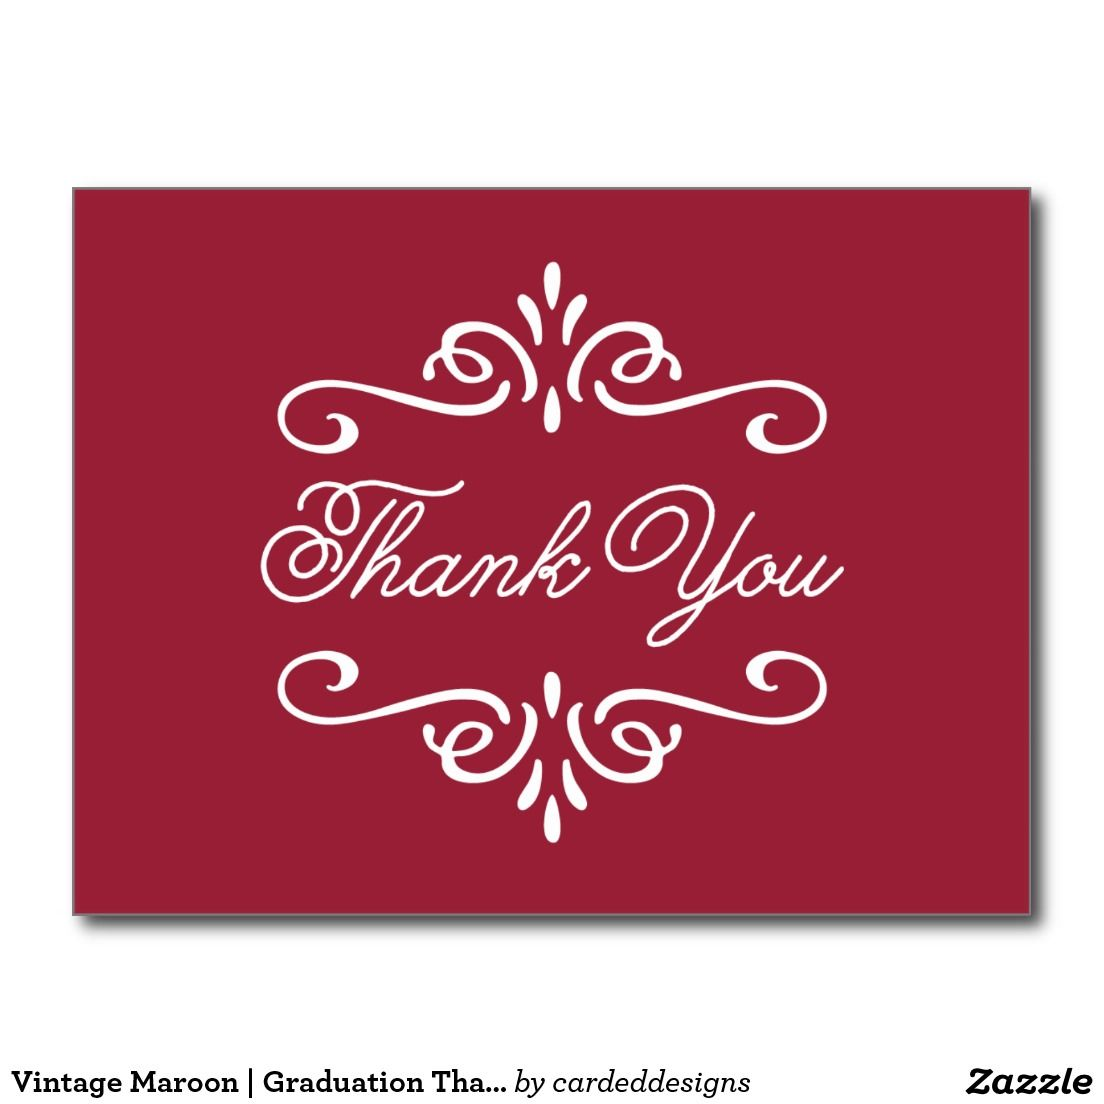 Vintage Maroon | Graduation Thank You Postcard